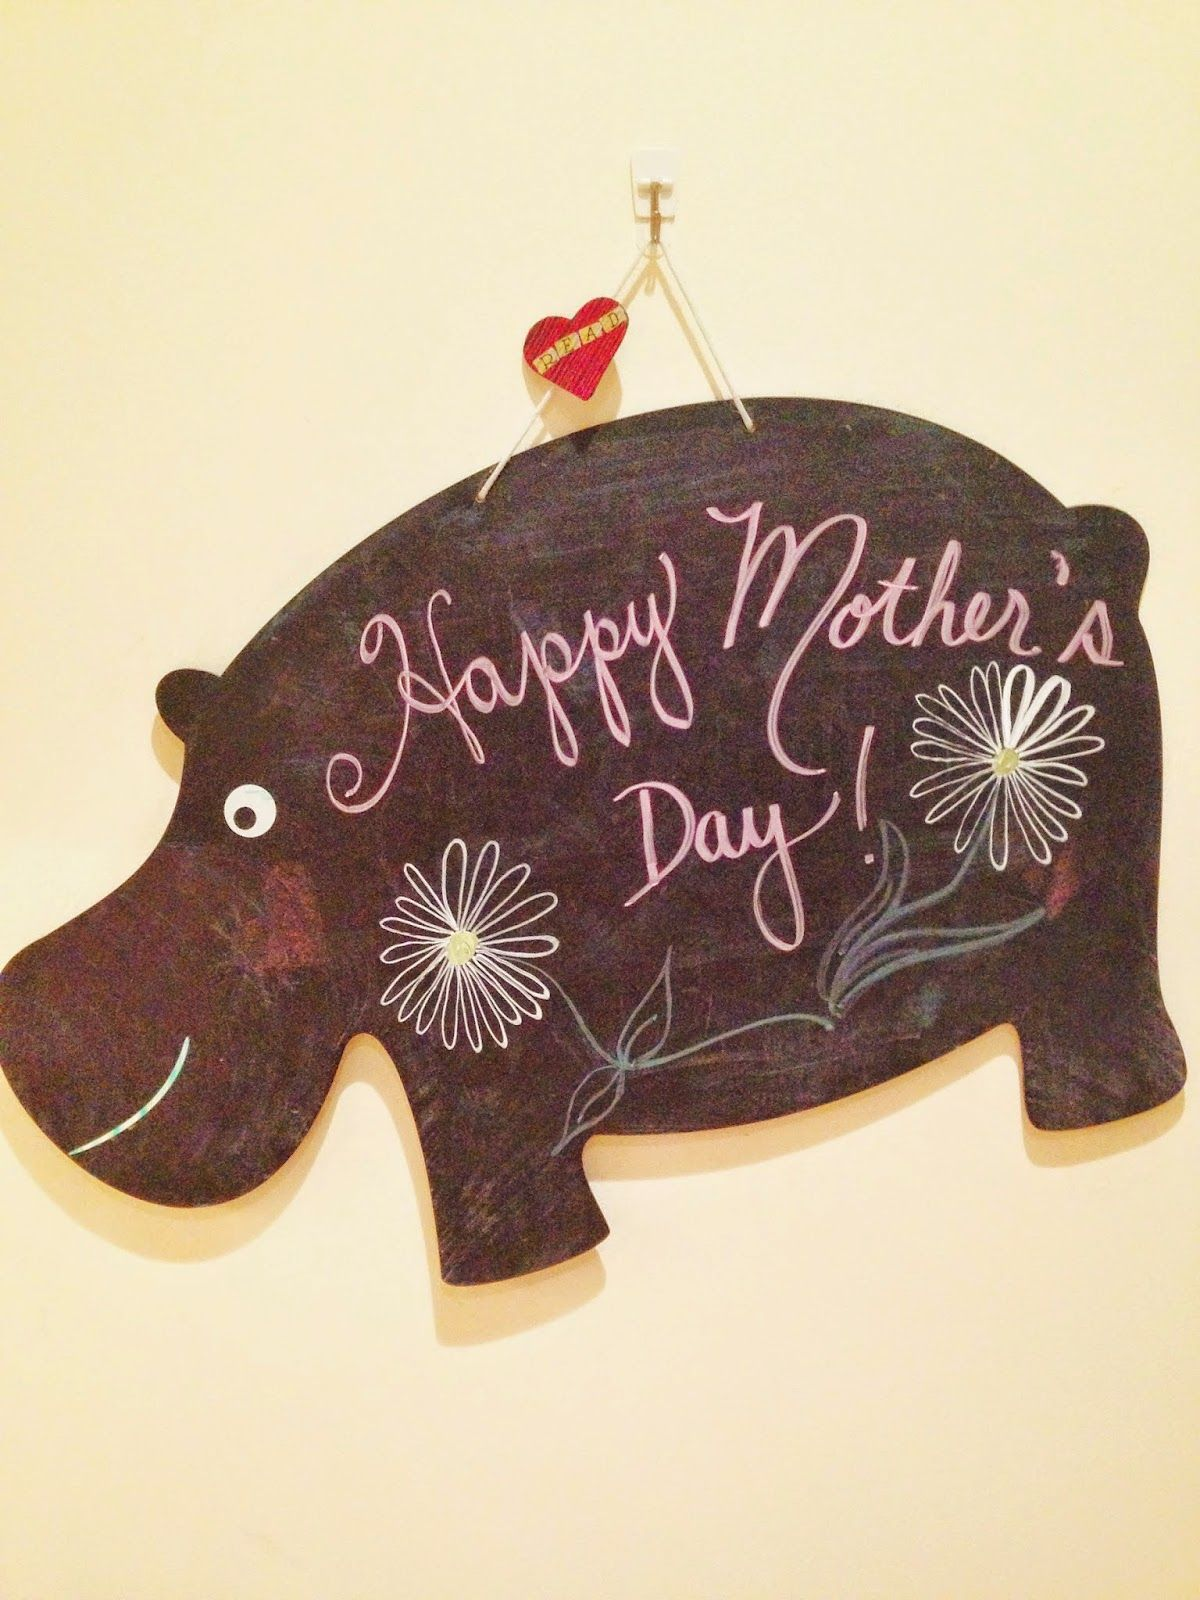 Scissors and Ink: A Floral Mother's Day